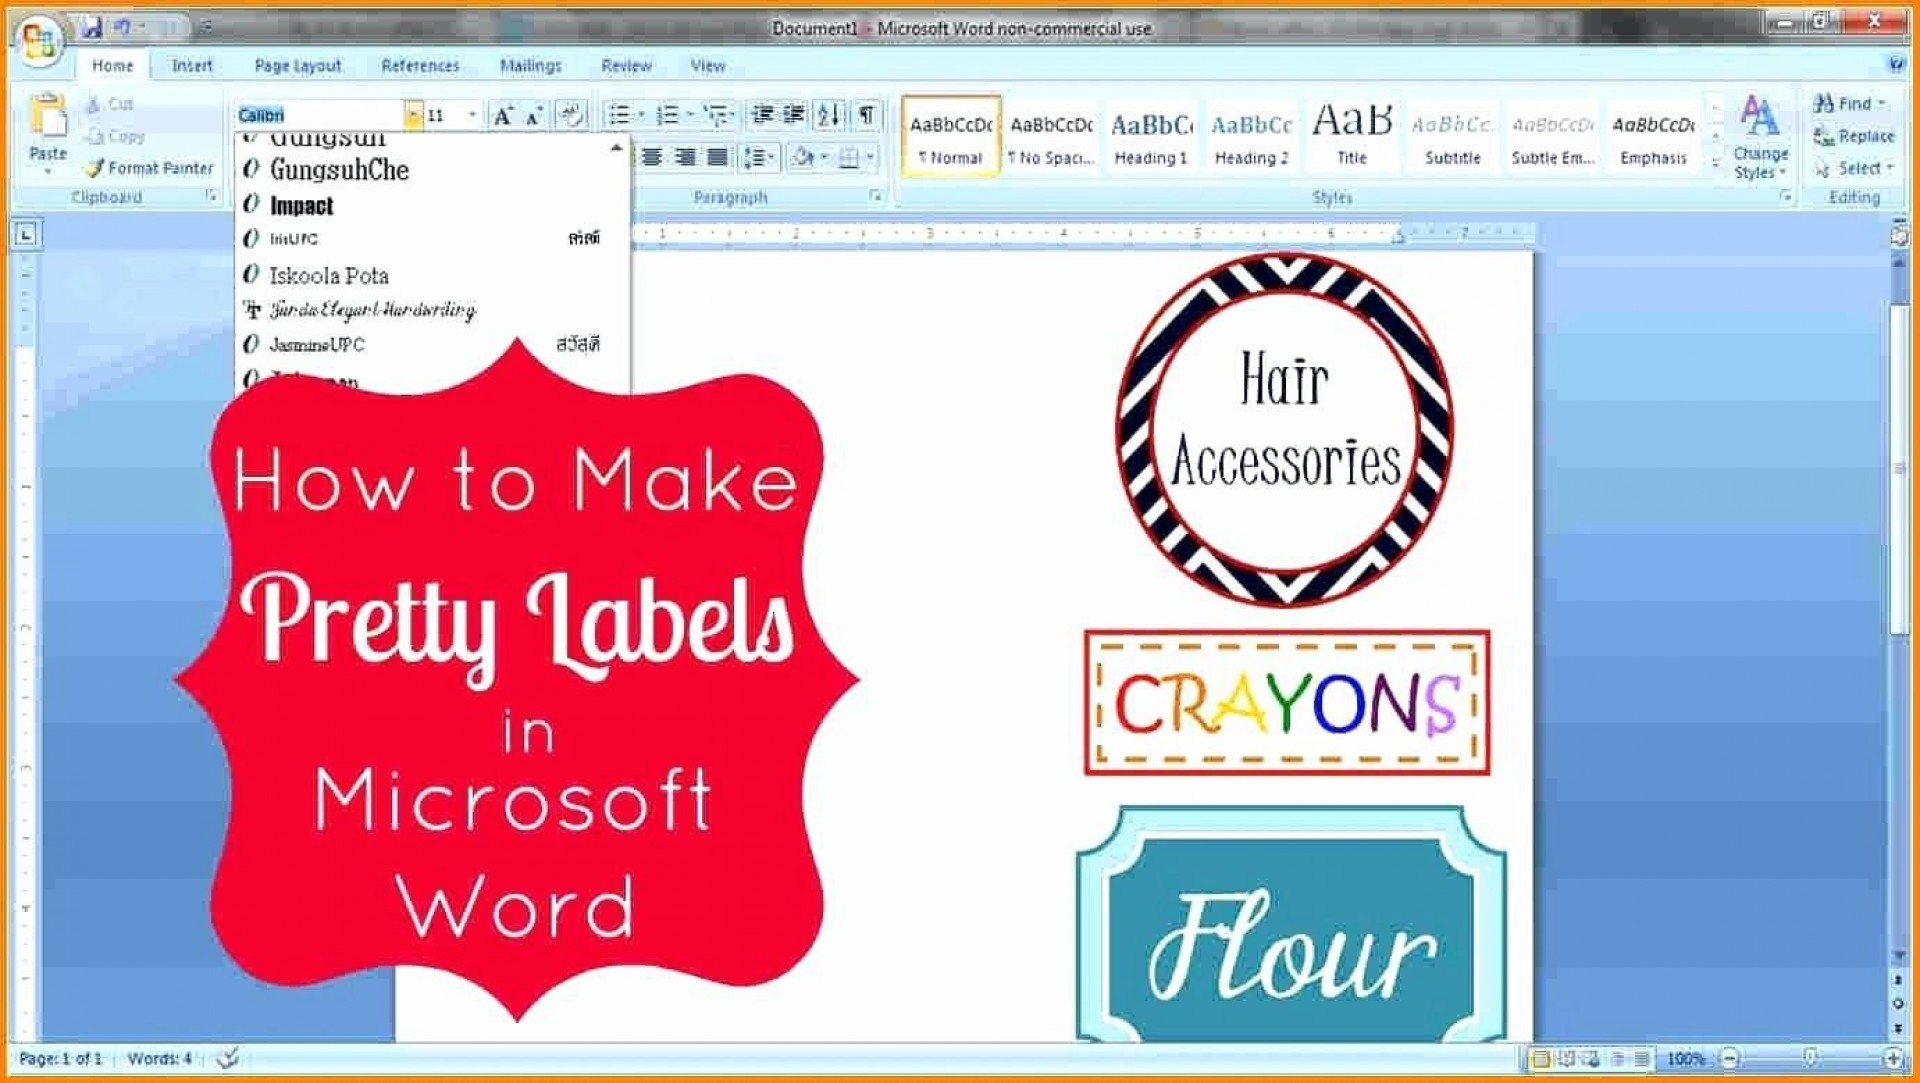 007 Magnificent Microsoft Word Label Template Free Photo  Cd Dvd Water Bottle1920